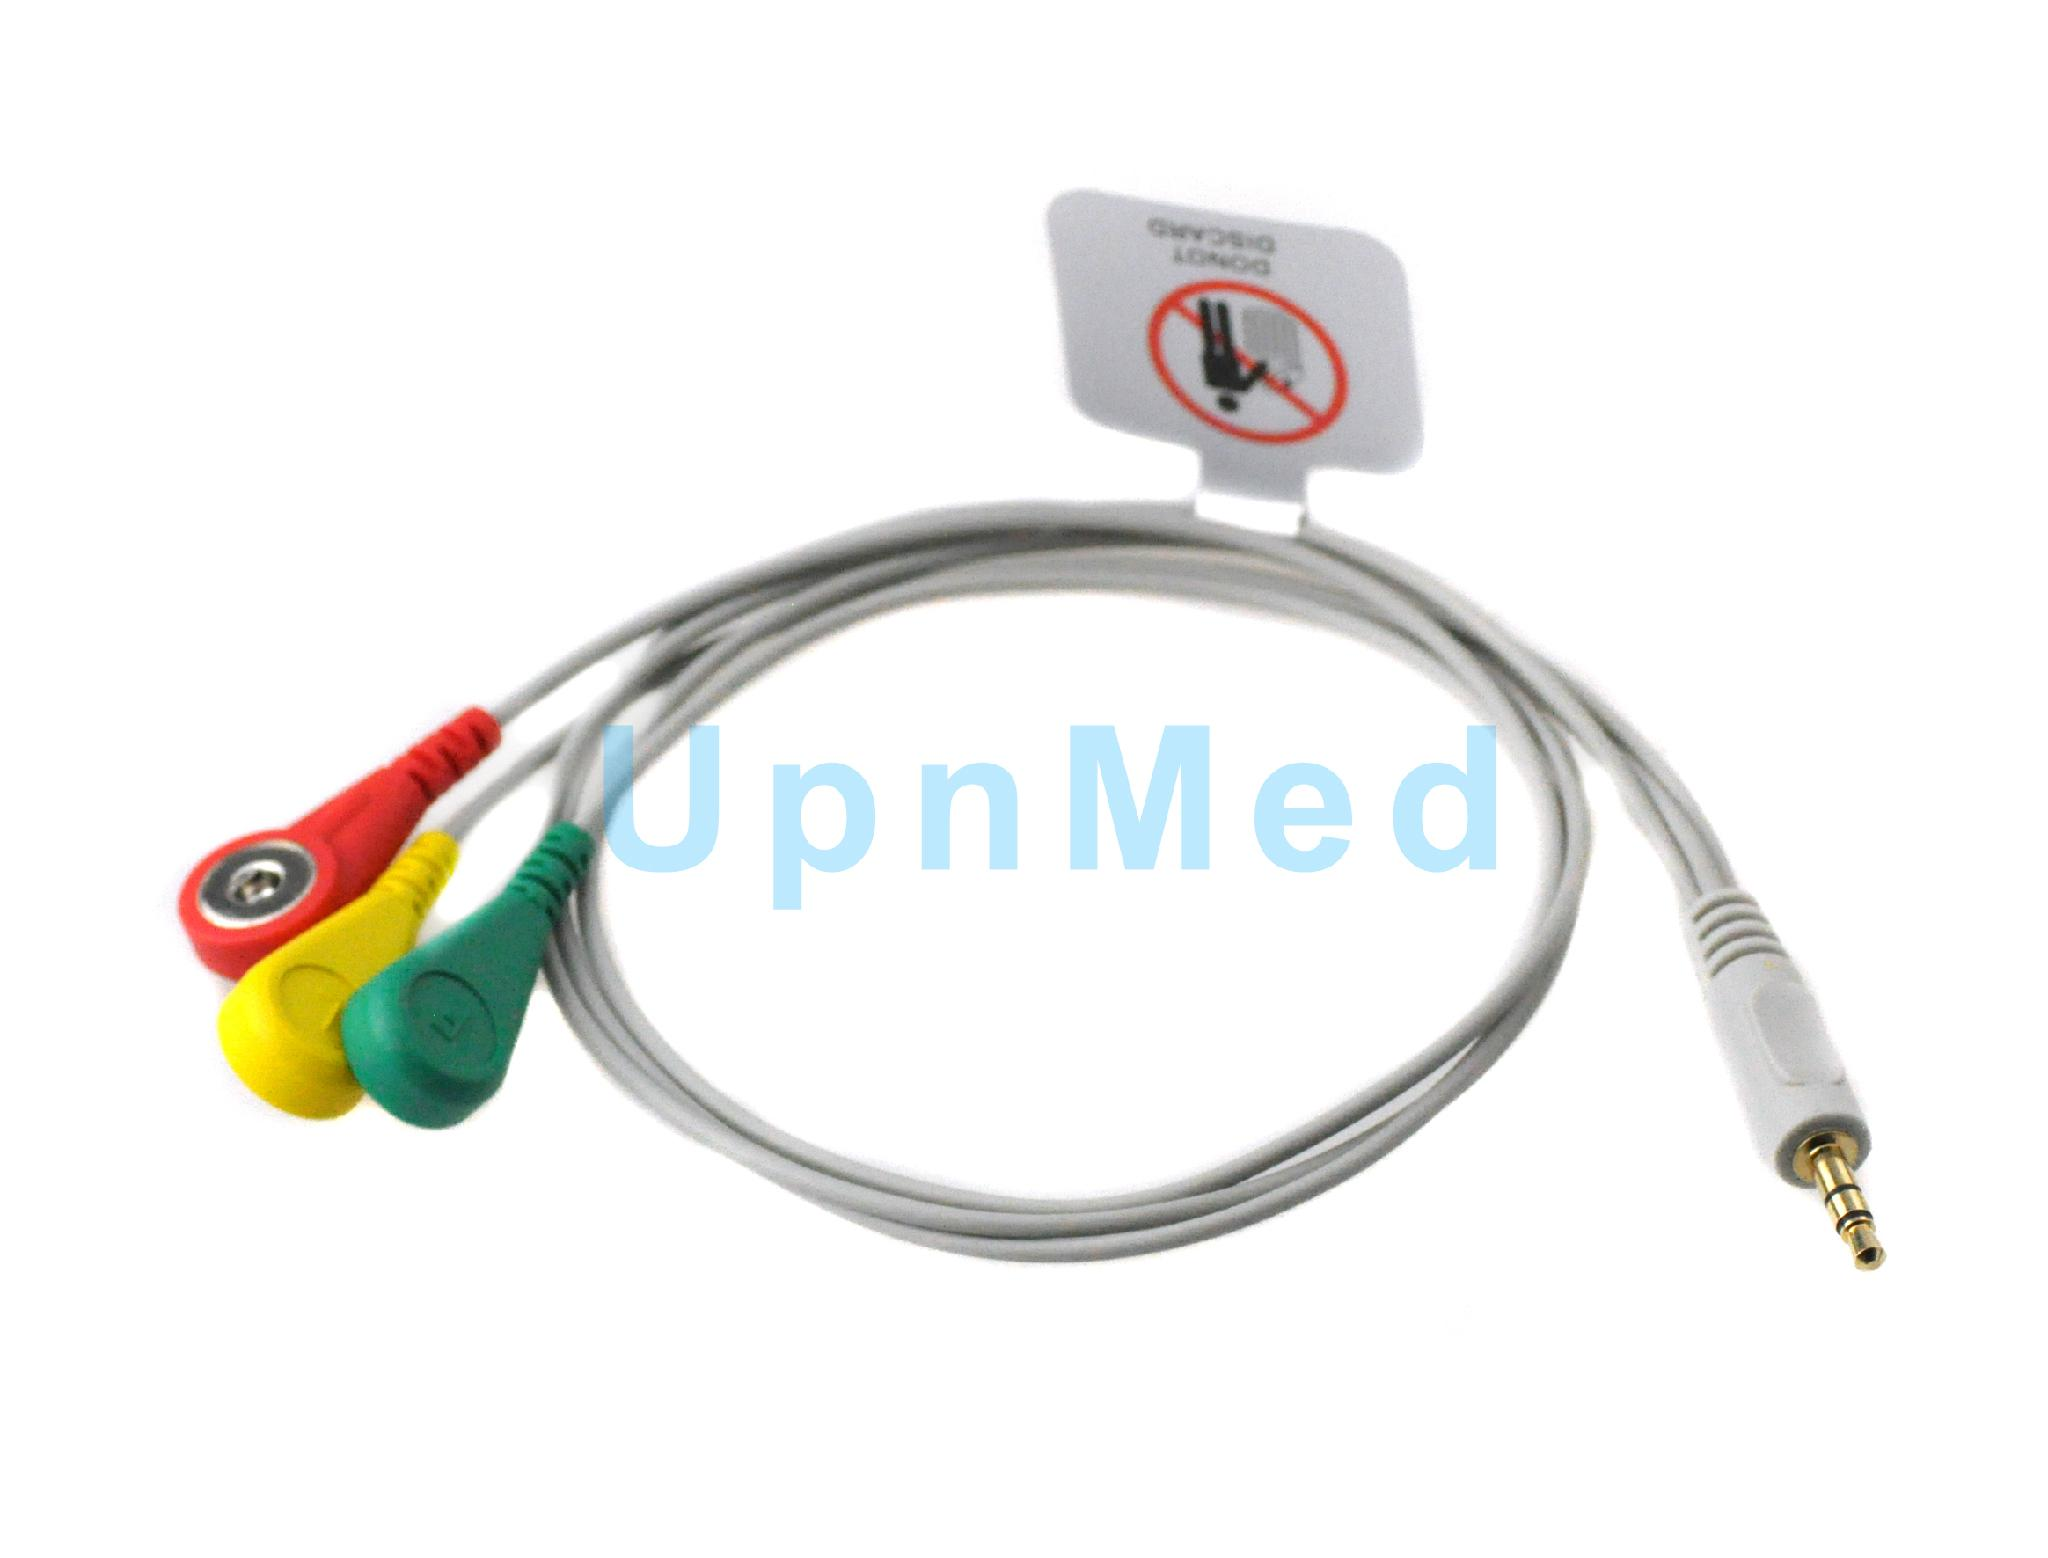 OEM Holter  One piece 3-lead ECG Cable with leadwires